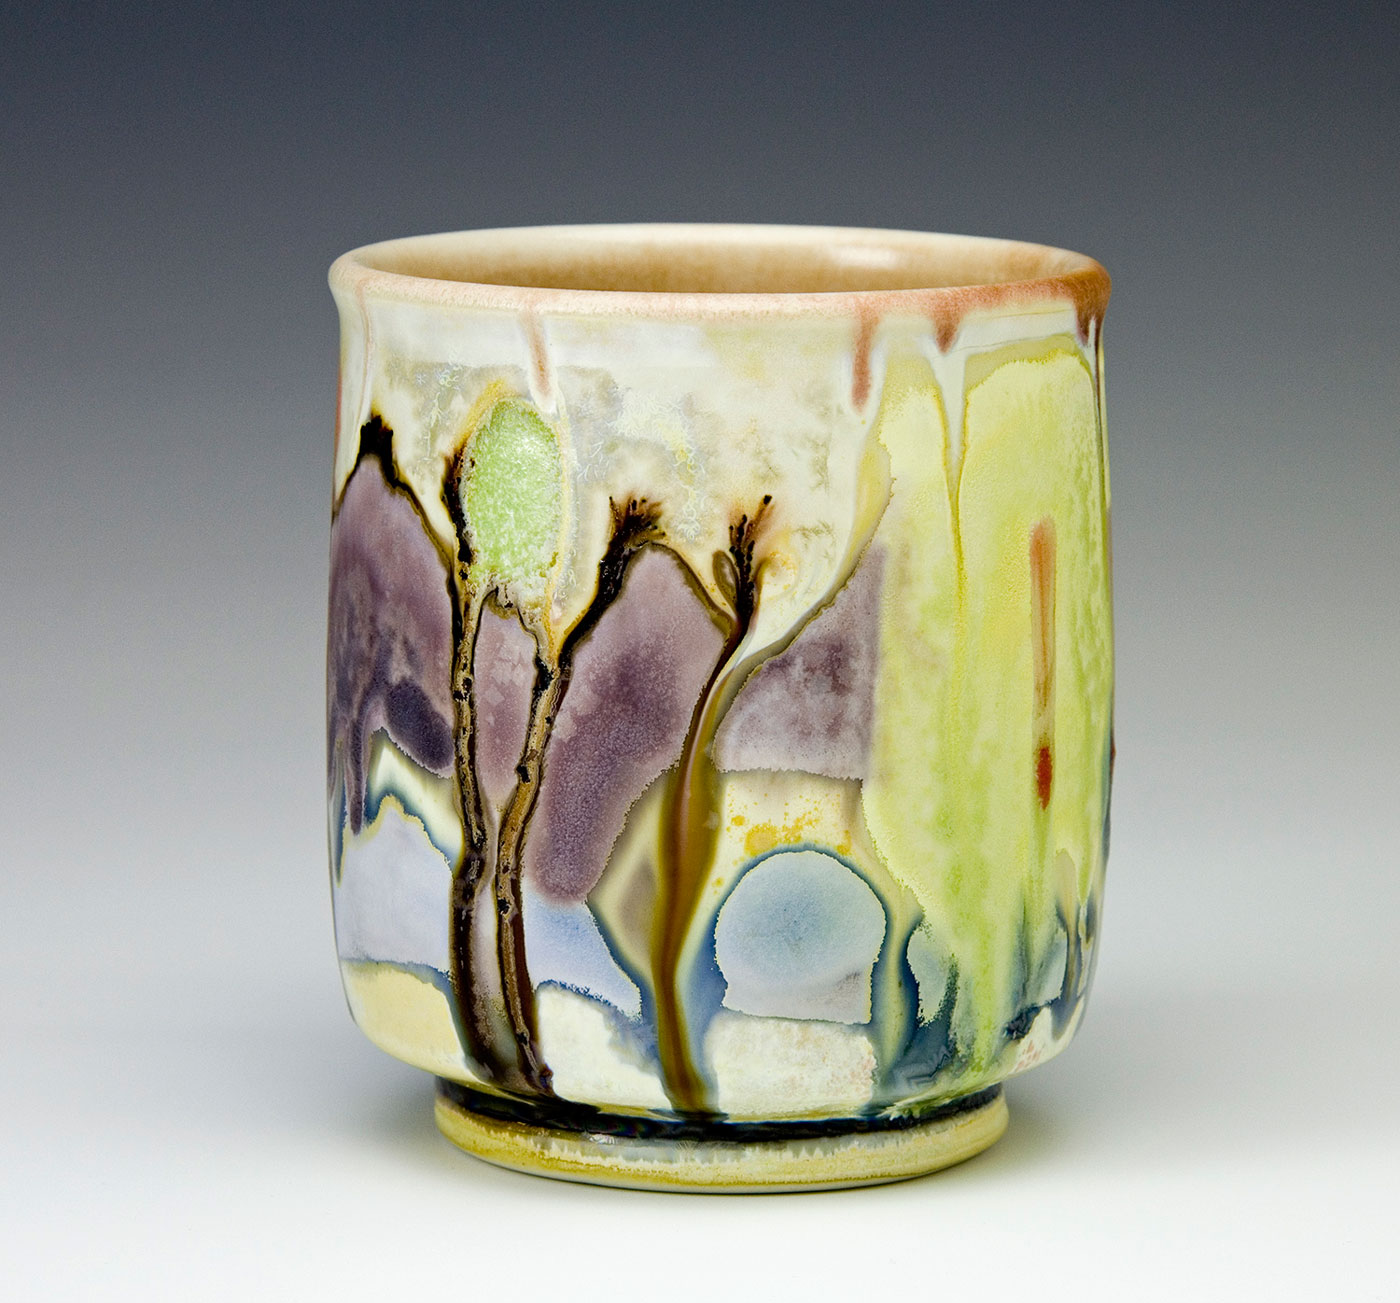 Abstract-Art-Flow-handmade-drinking-cup-Samantha-Henneke.jpg